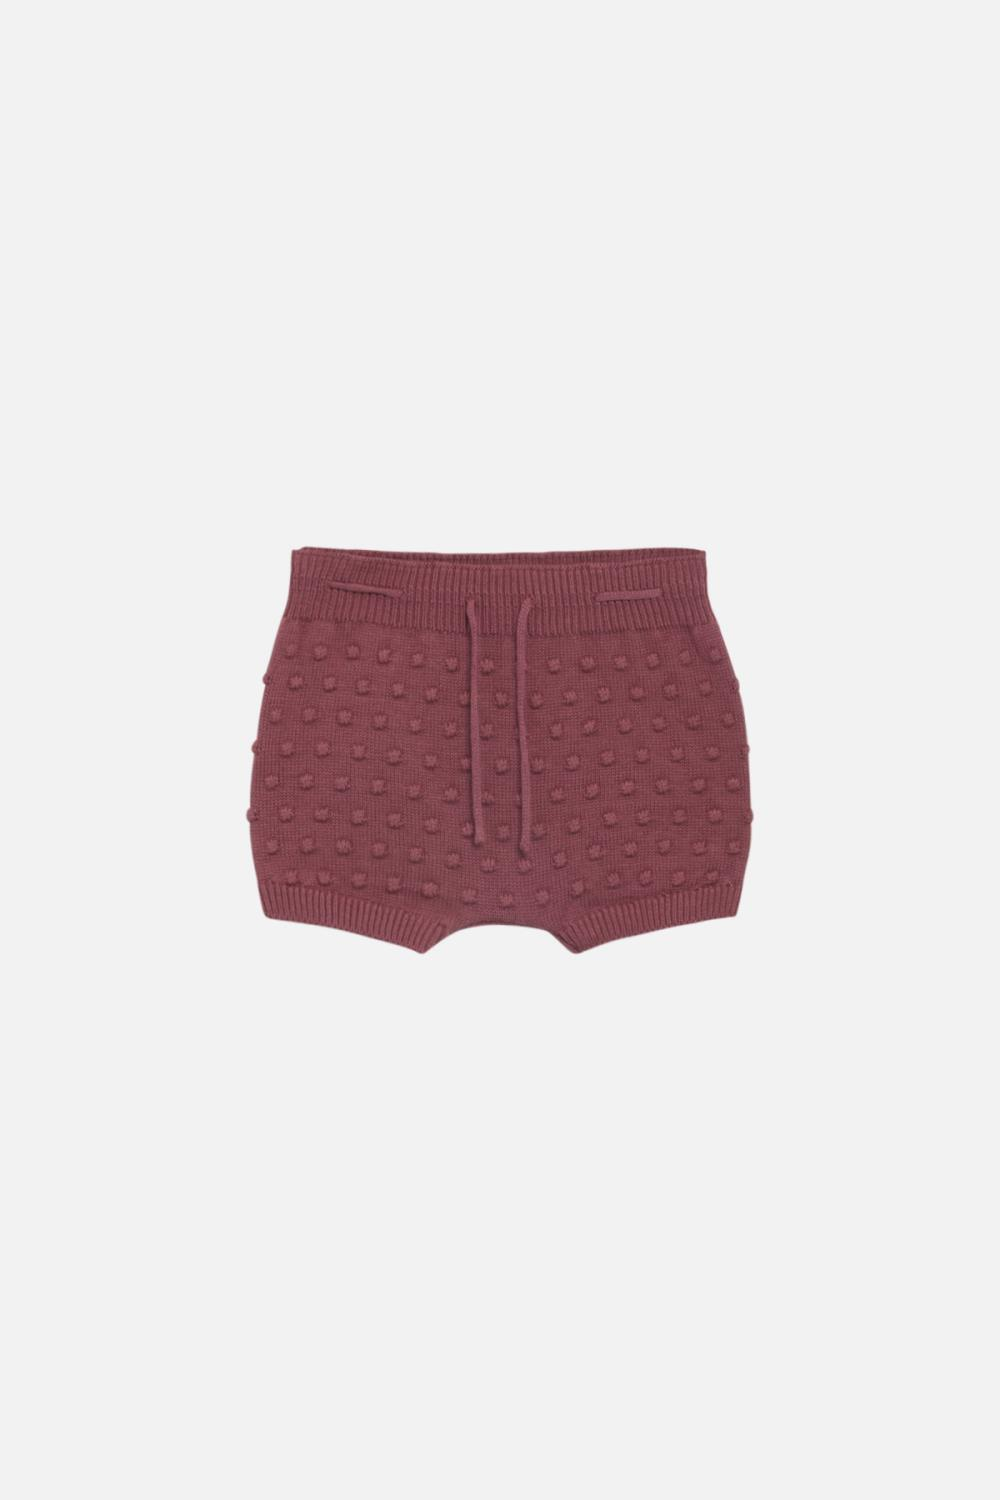 Hustand Claire - Shorts Heli, red rouge